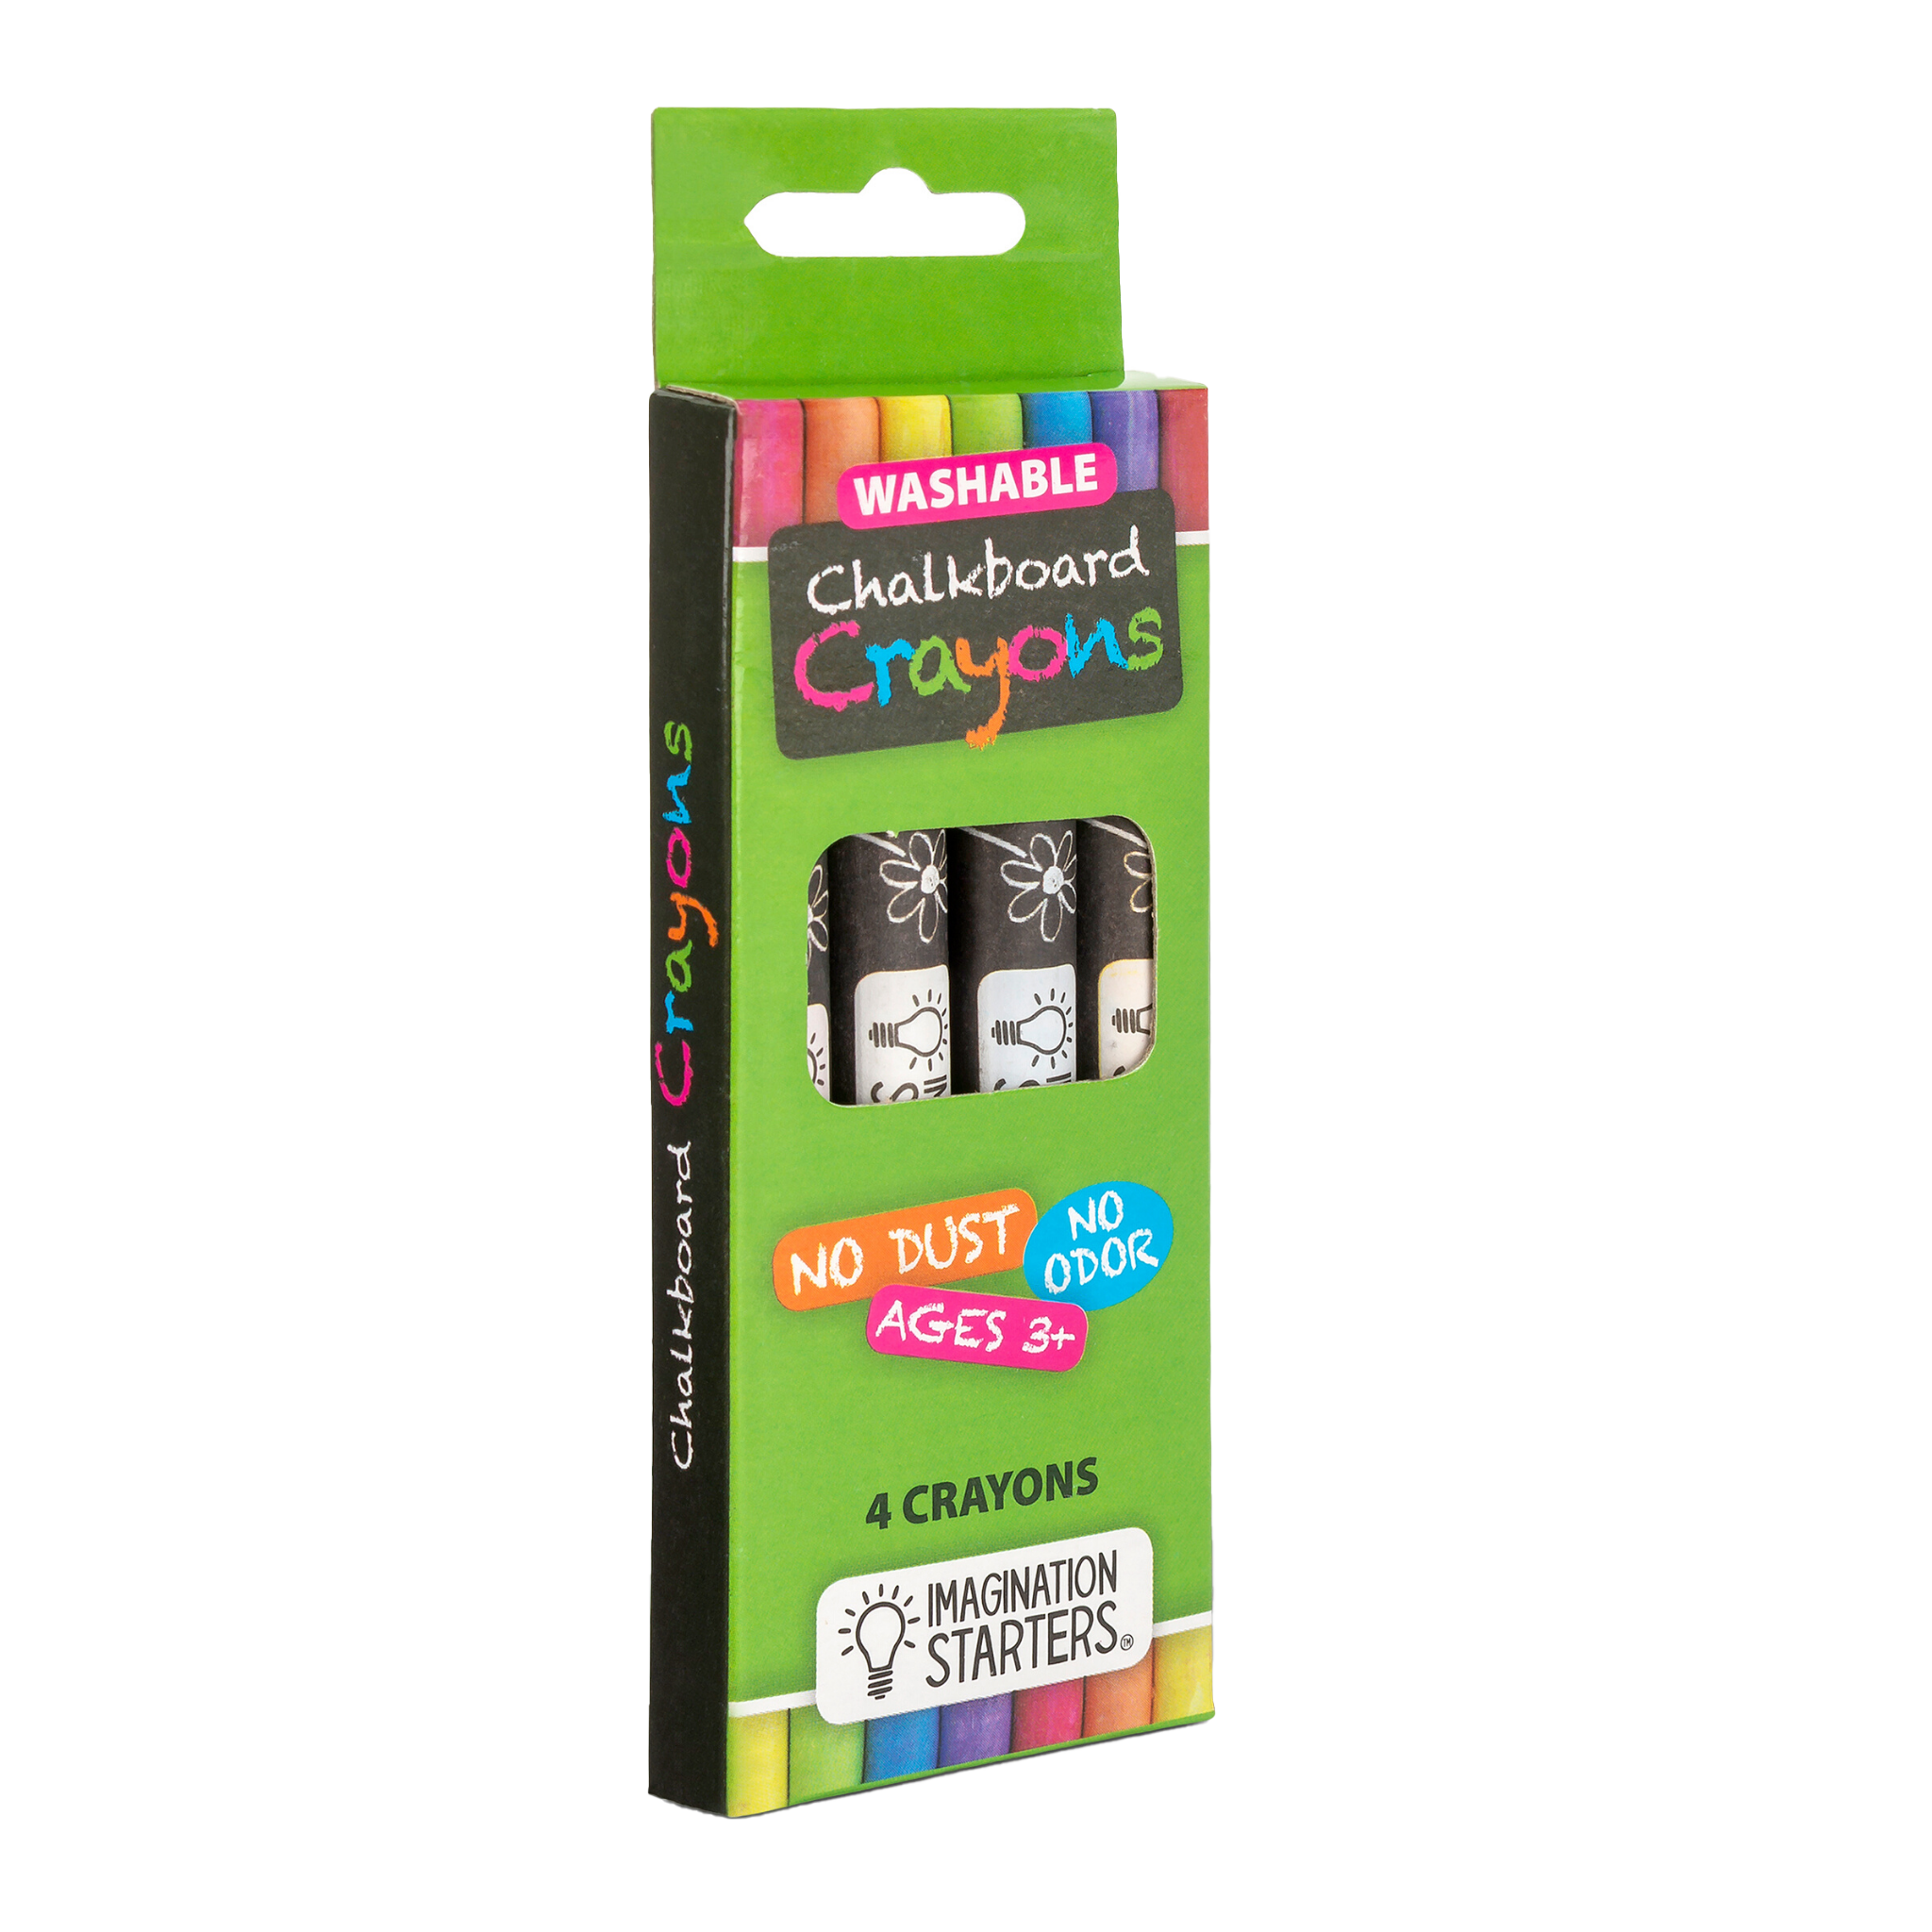 Imagination Starters - Chalkboard Crayon - Set of 4